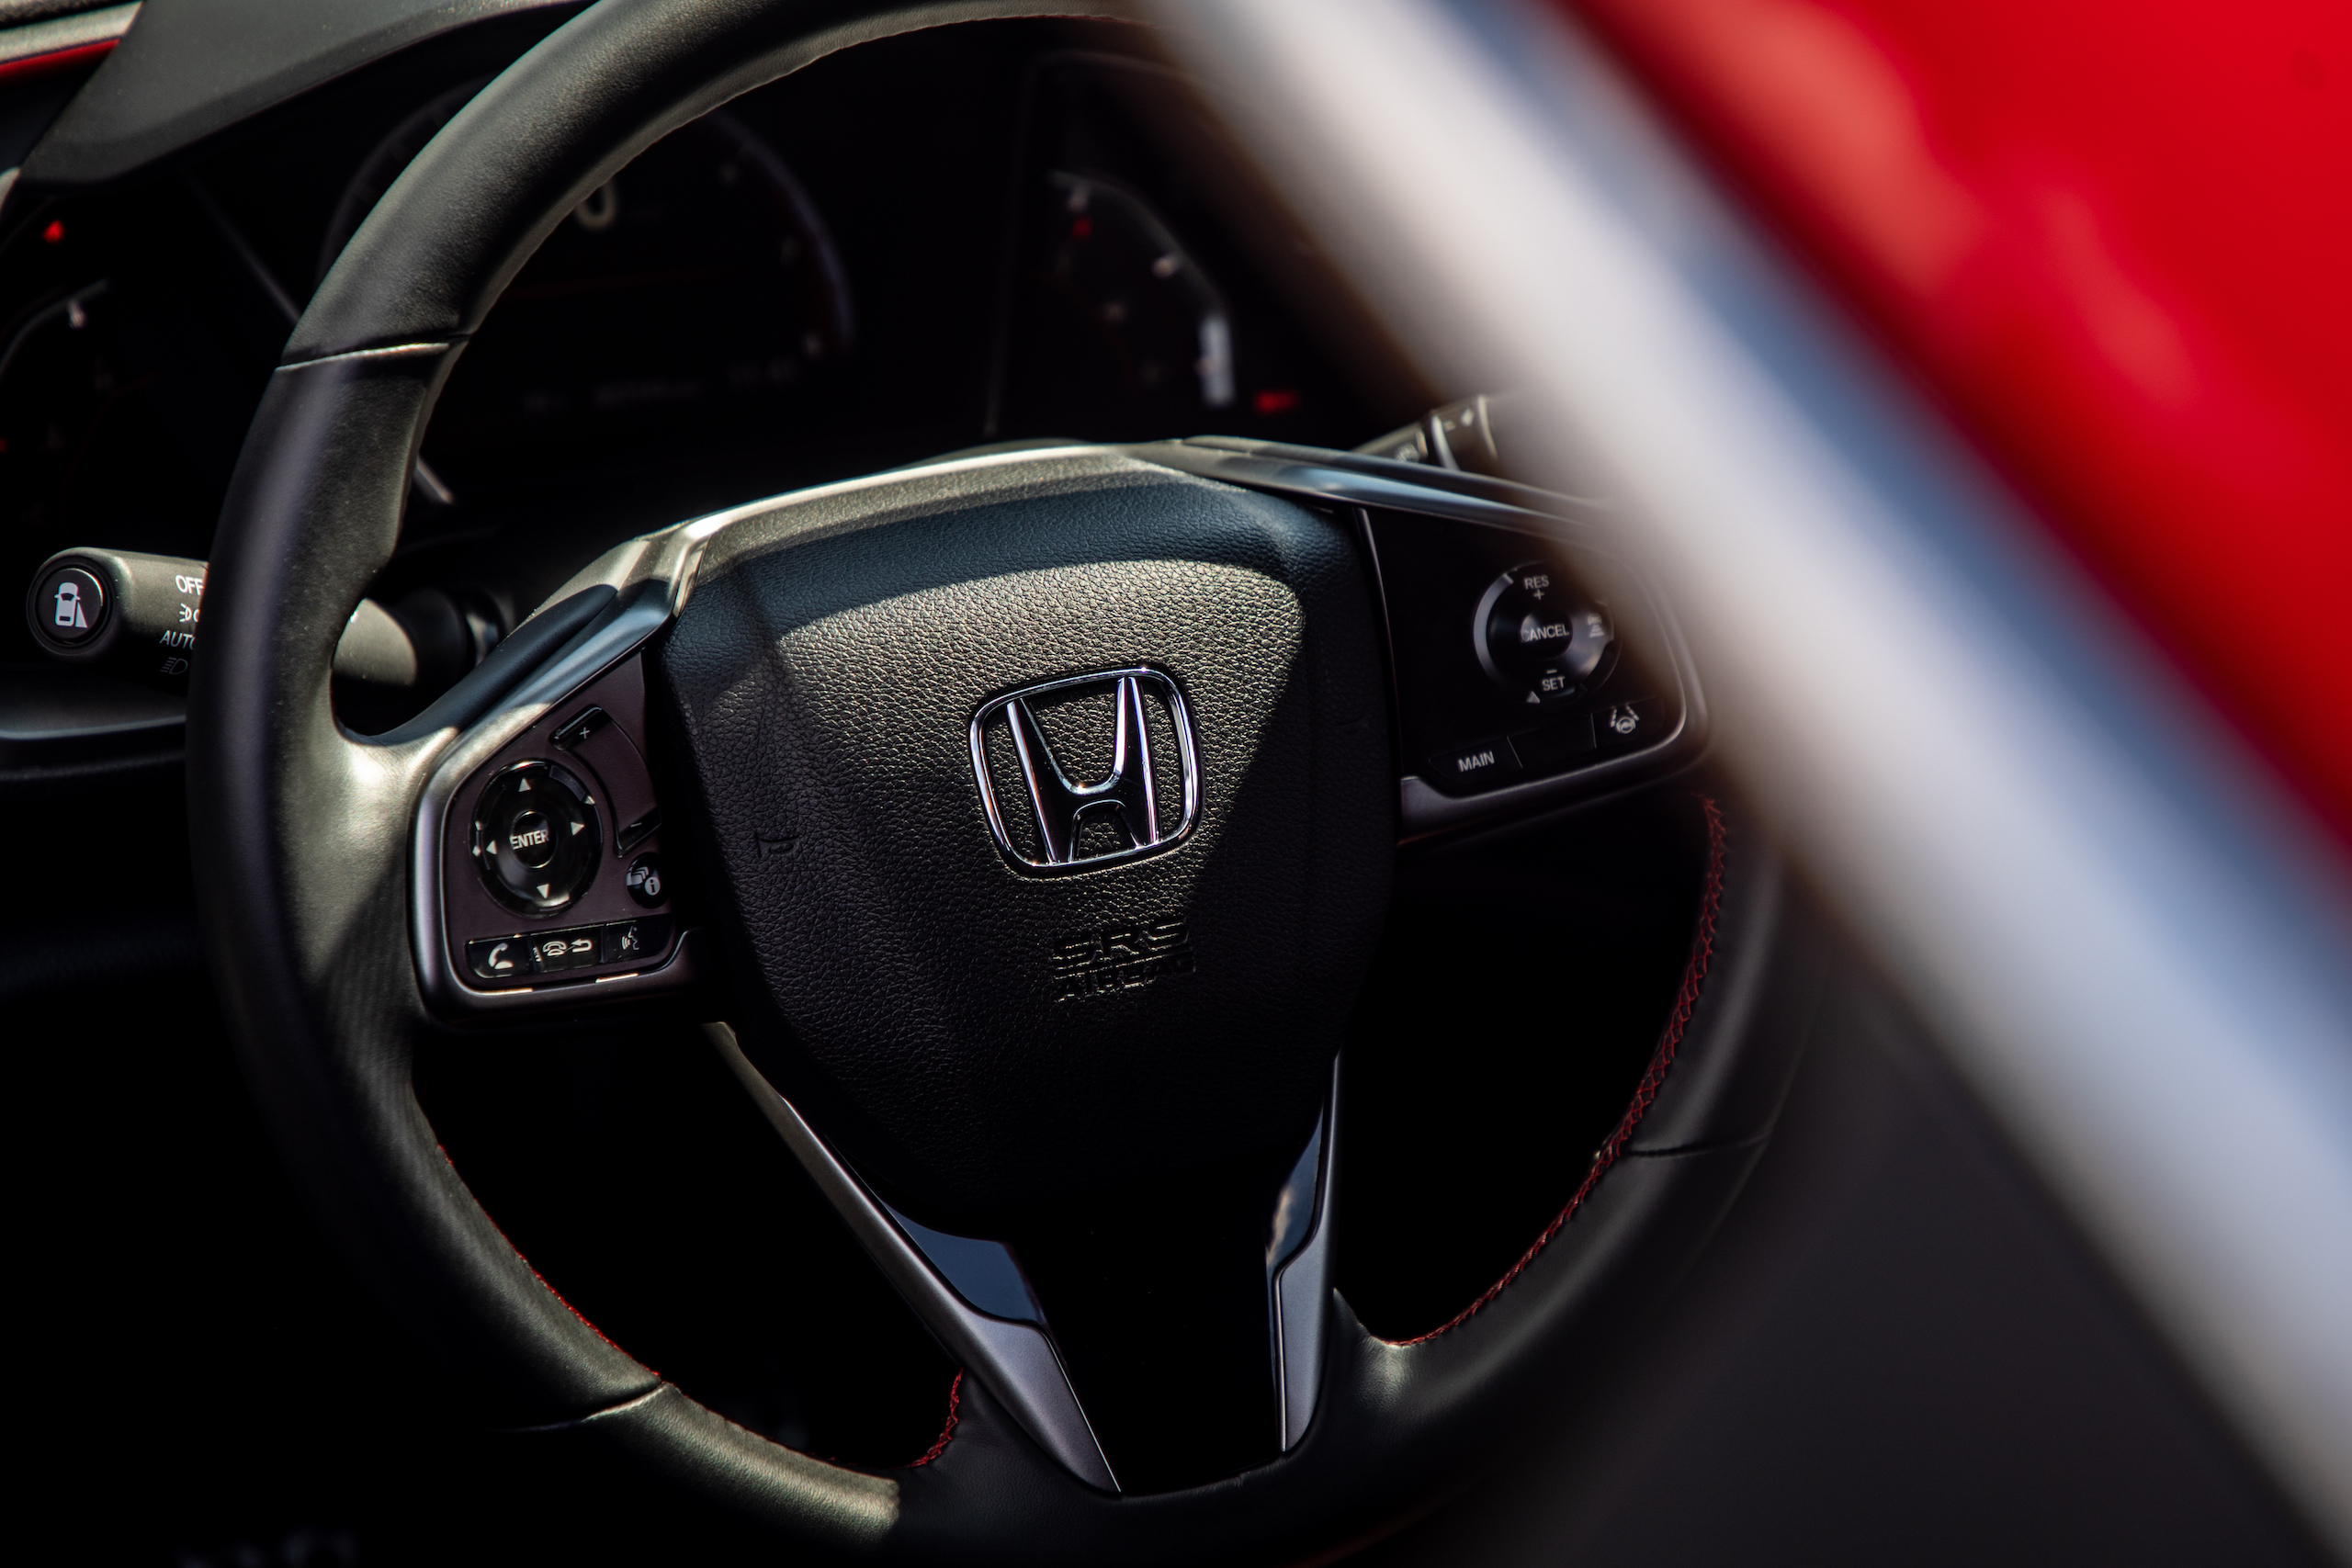 2020 Civic Si interior steering wheel